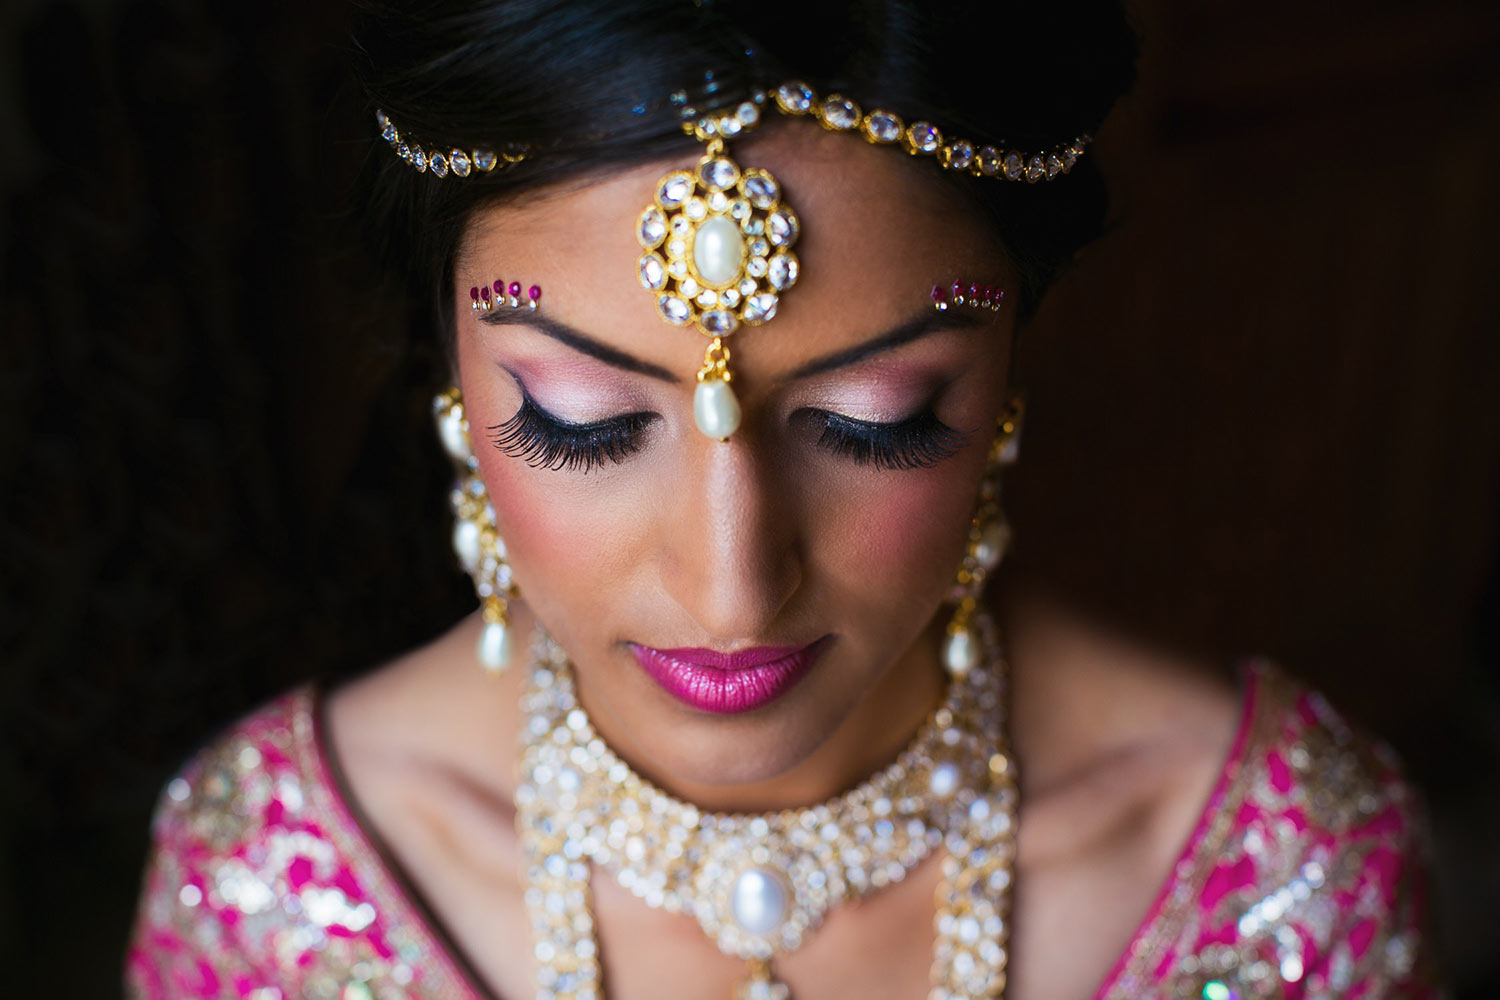 indian-bride-with-pink-silver-make-up-jewelry-worlds-best-wedding-photos-callaway-gable-los-angeles-wedding-photographers